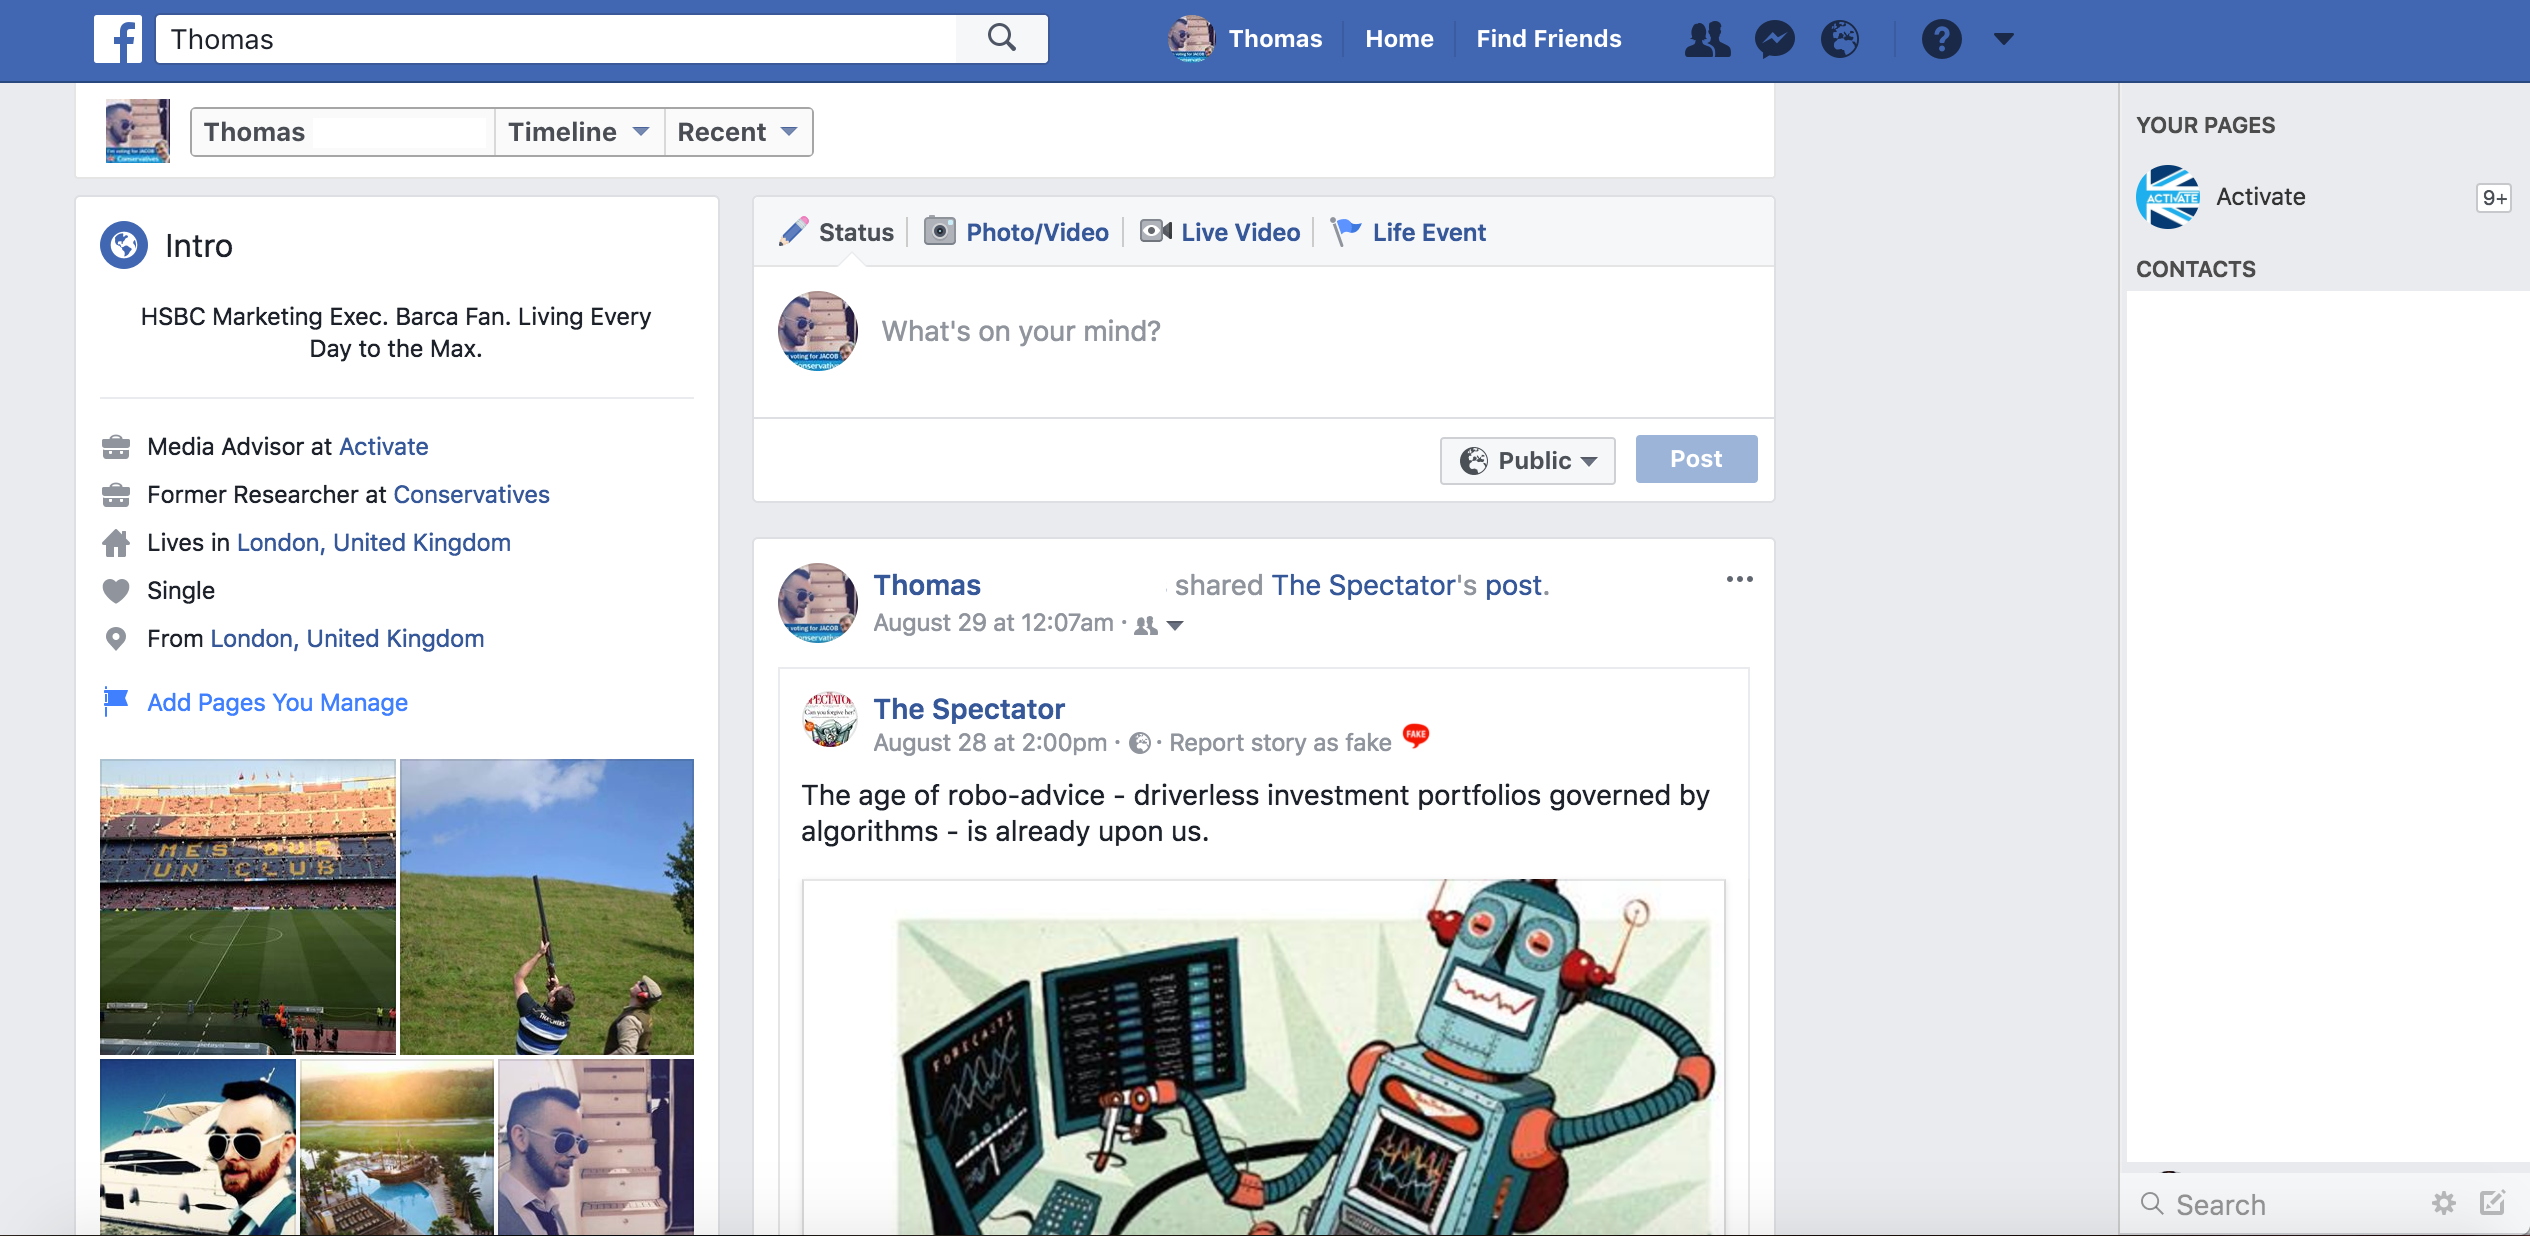 Tory Thomas Profile Activate